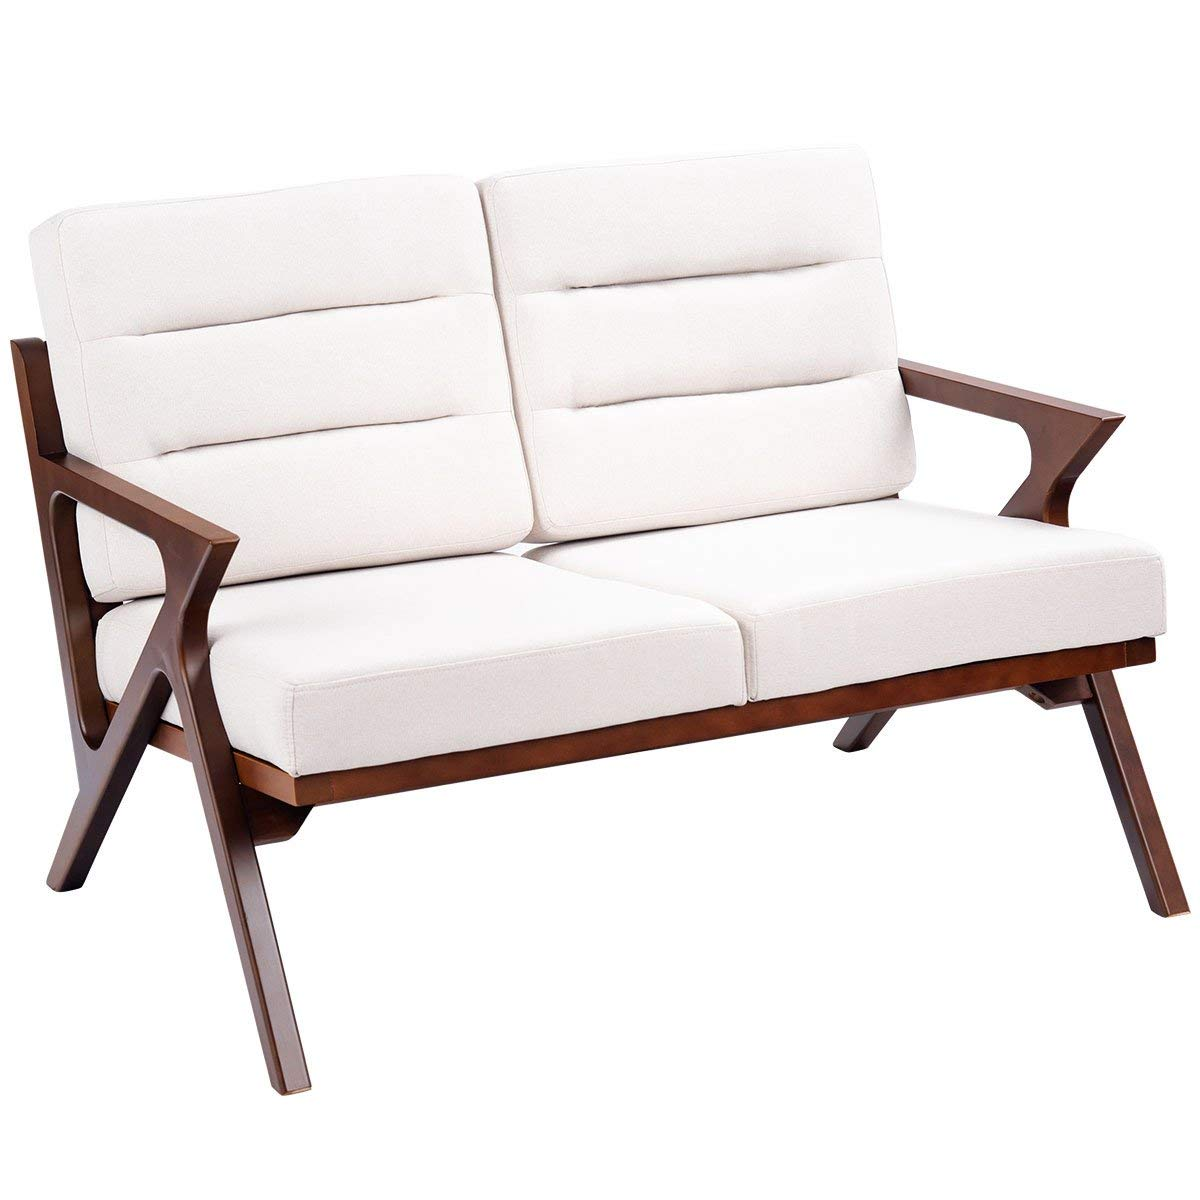 Giantex Mid Century Vintage Loveseat, Solid Wood Construction, Padded Seat, Armchair Sofa Bench, Fabric Upholstered Wooden Two-Seat Lounge Chair